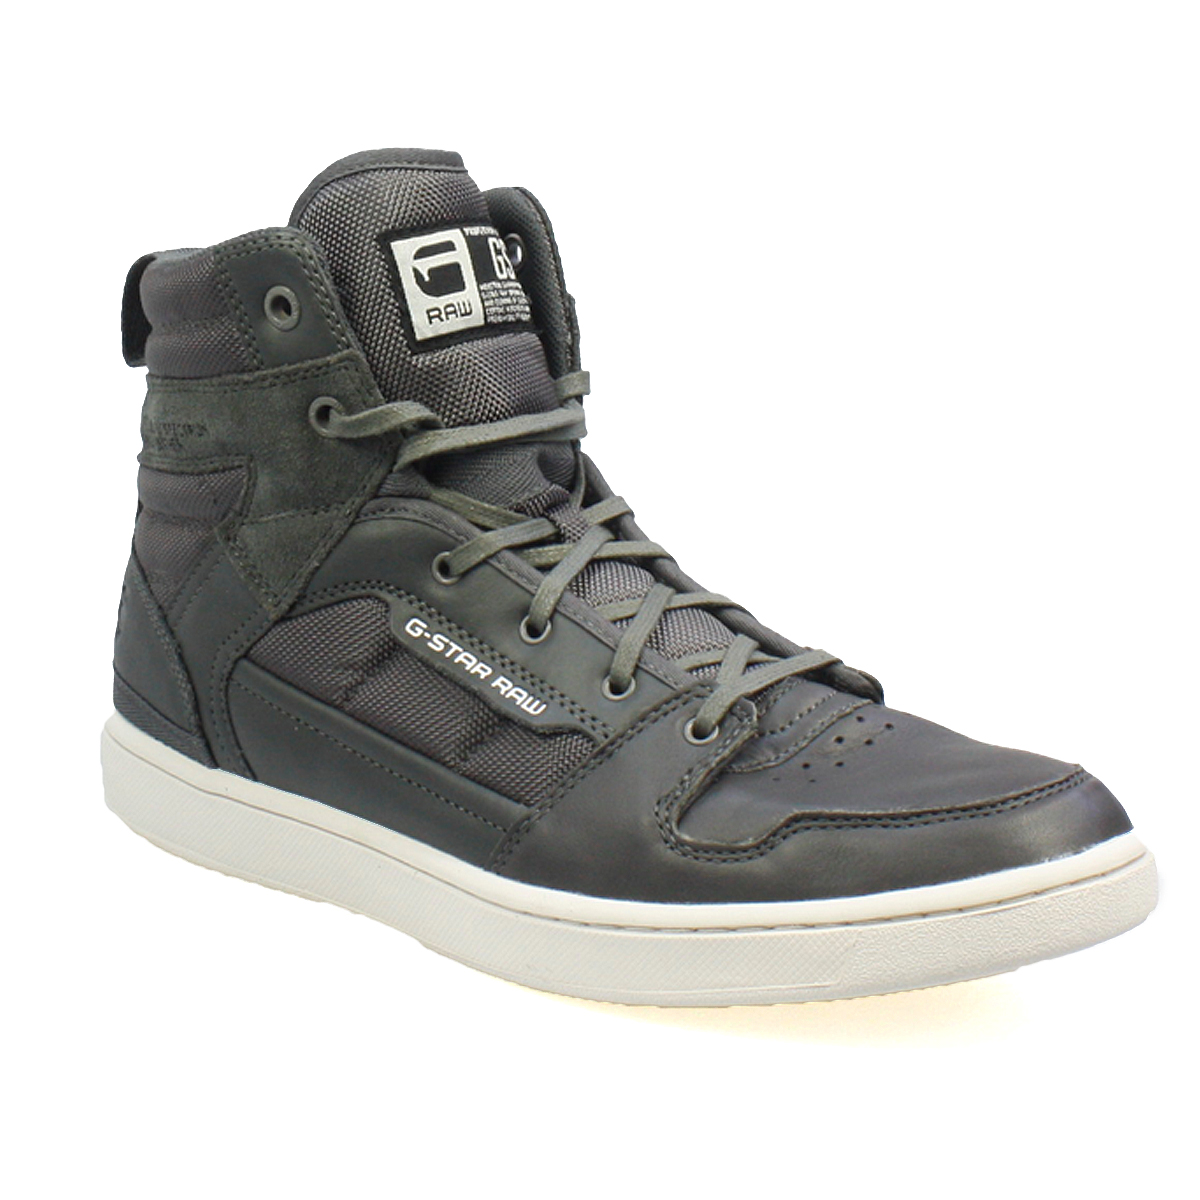 g star sneaker herren g star stanton low mono sneaker herrenschuhe herren schuhe g star. Black Bedroom Furniture Sets. Home Design Ideas